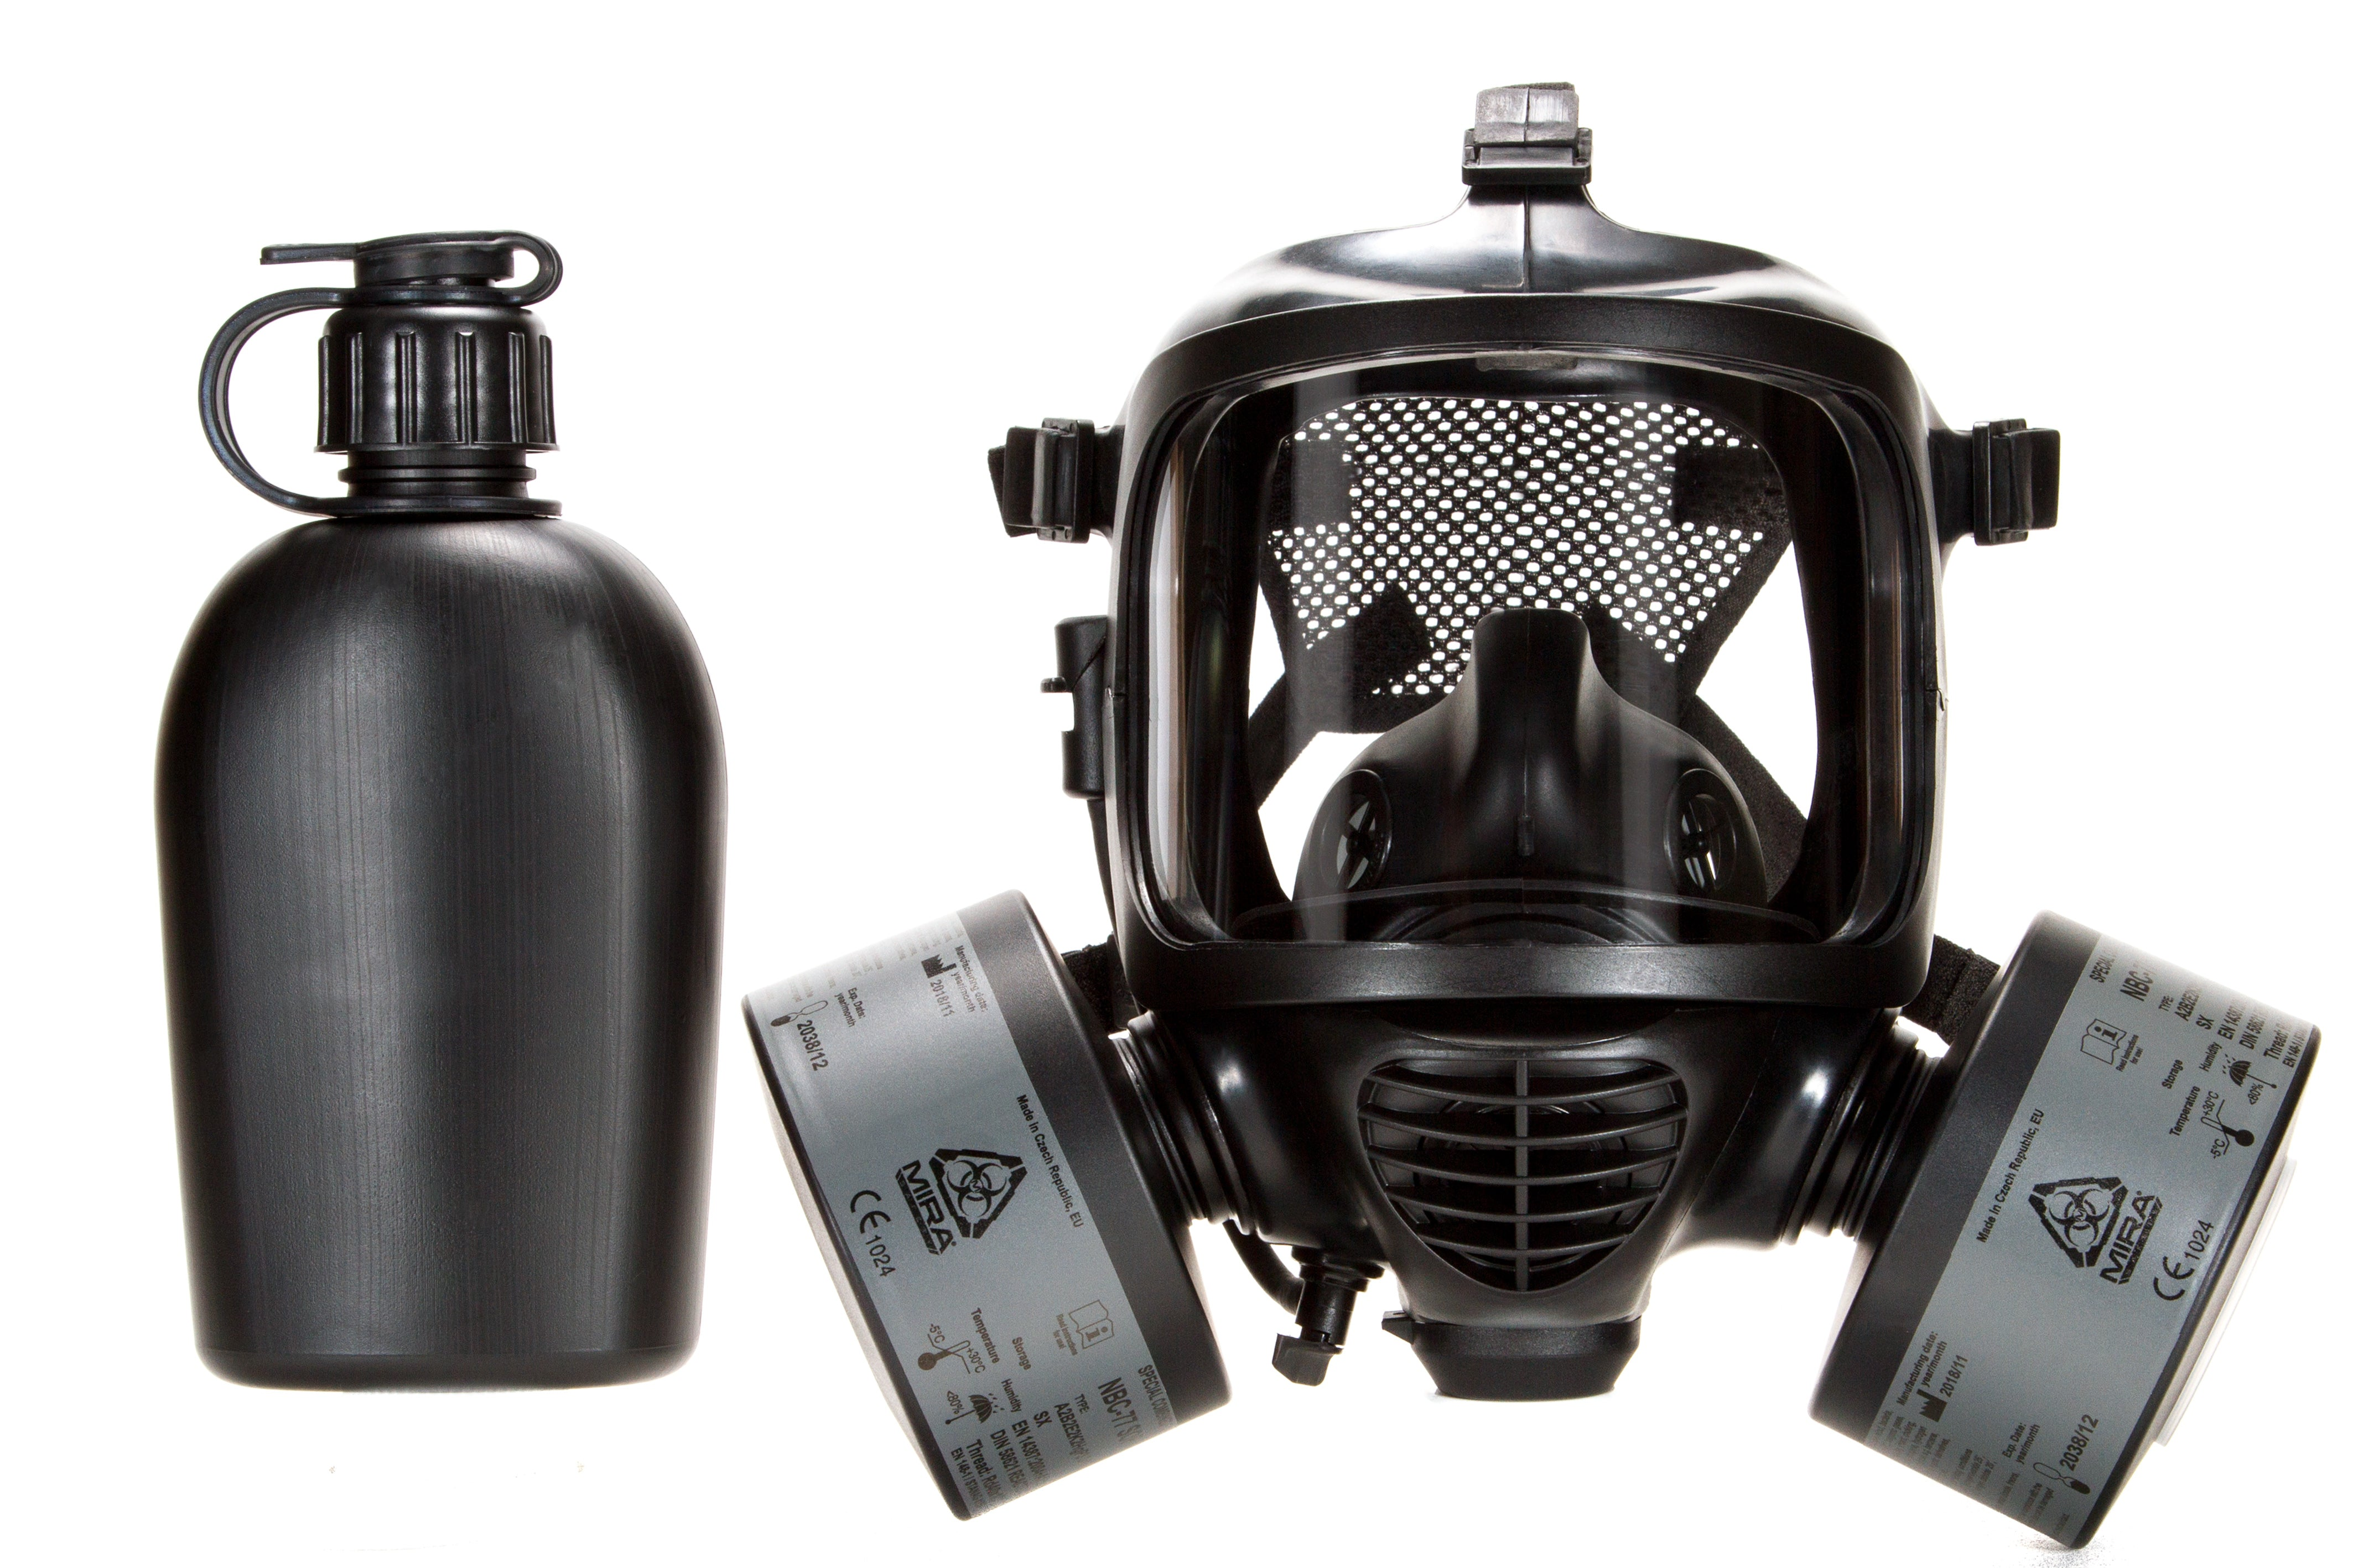 CM-6M tactical gas mask with two CBRN filters